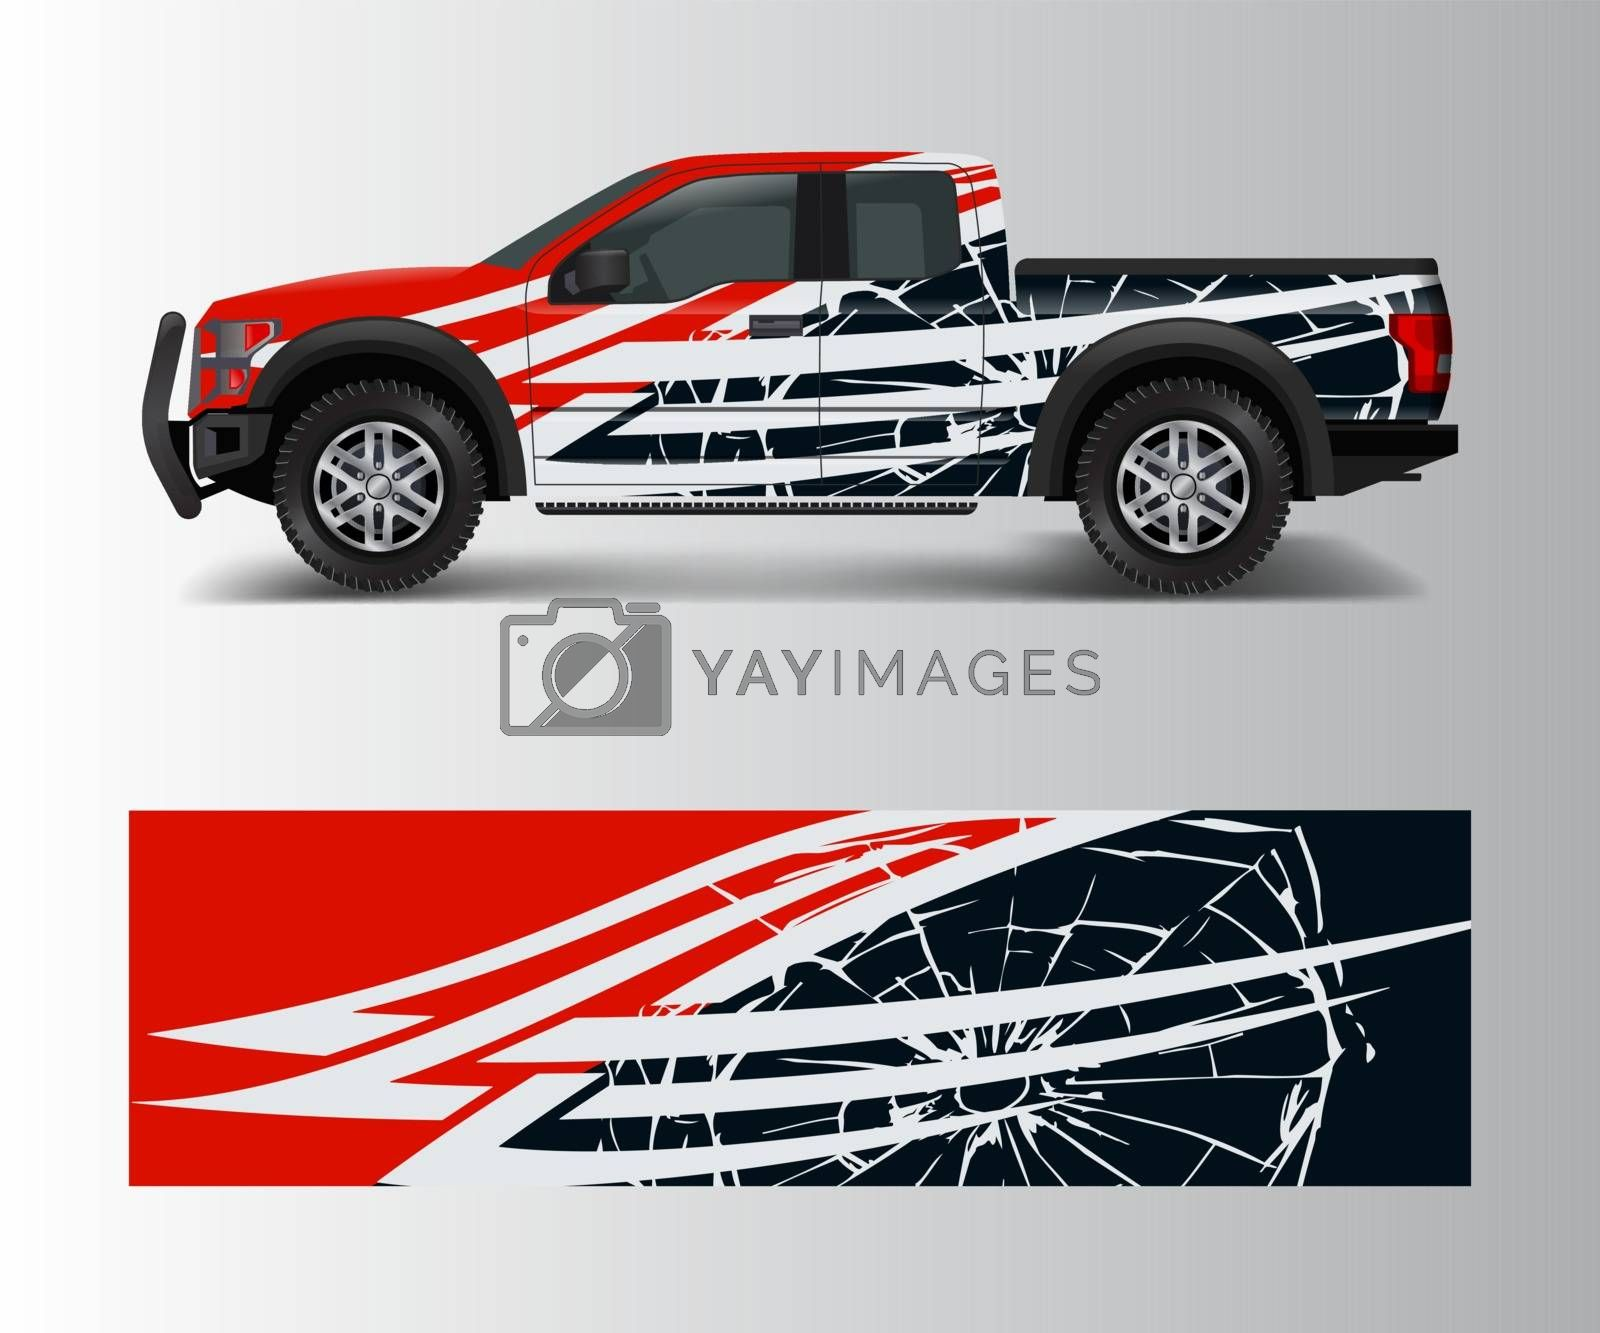 cargo van and car wrap vector, Truck decal designs, Graphic abstract stripe designs for offroad race, adventure and livery car